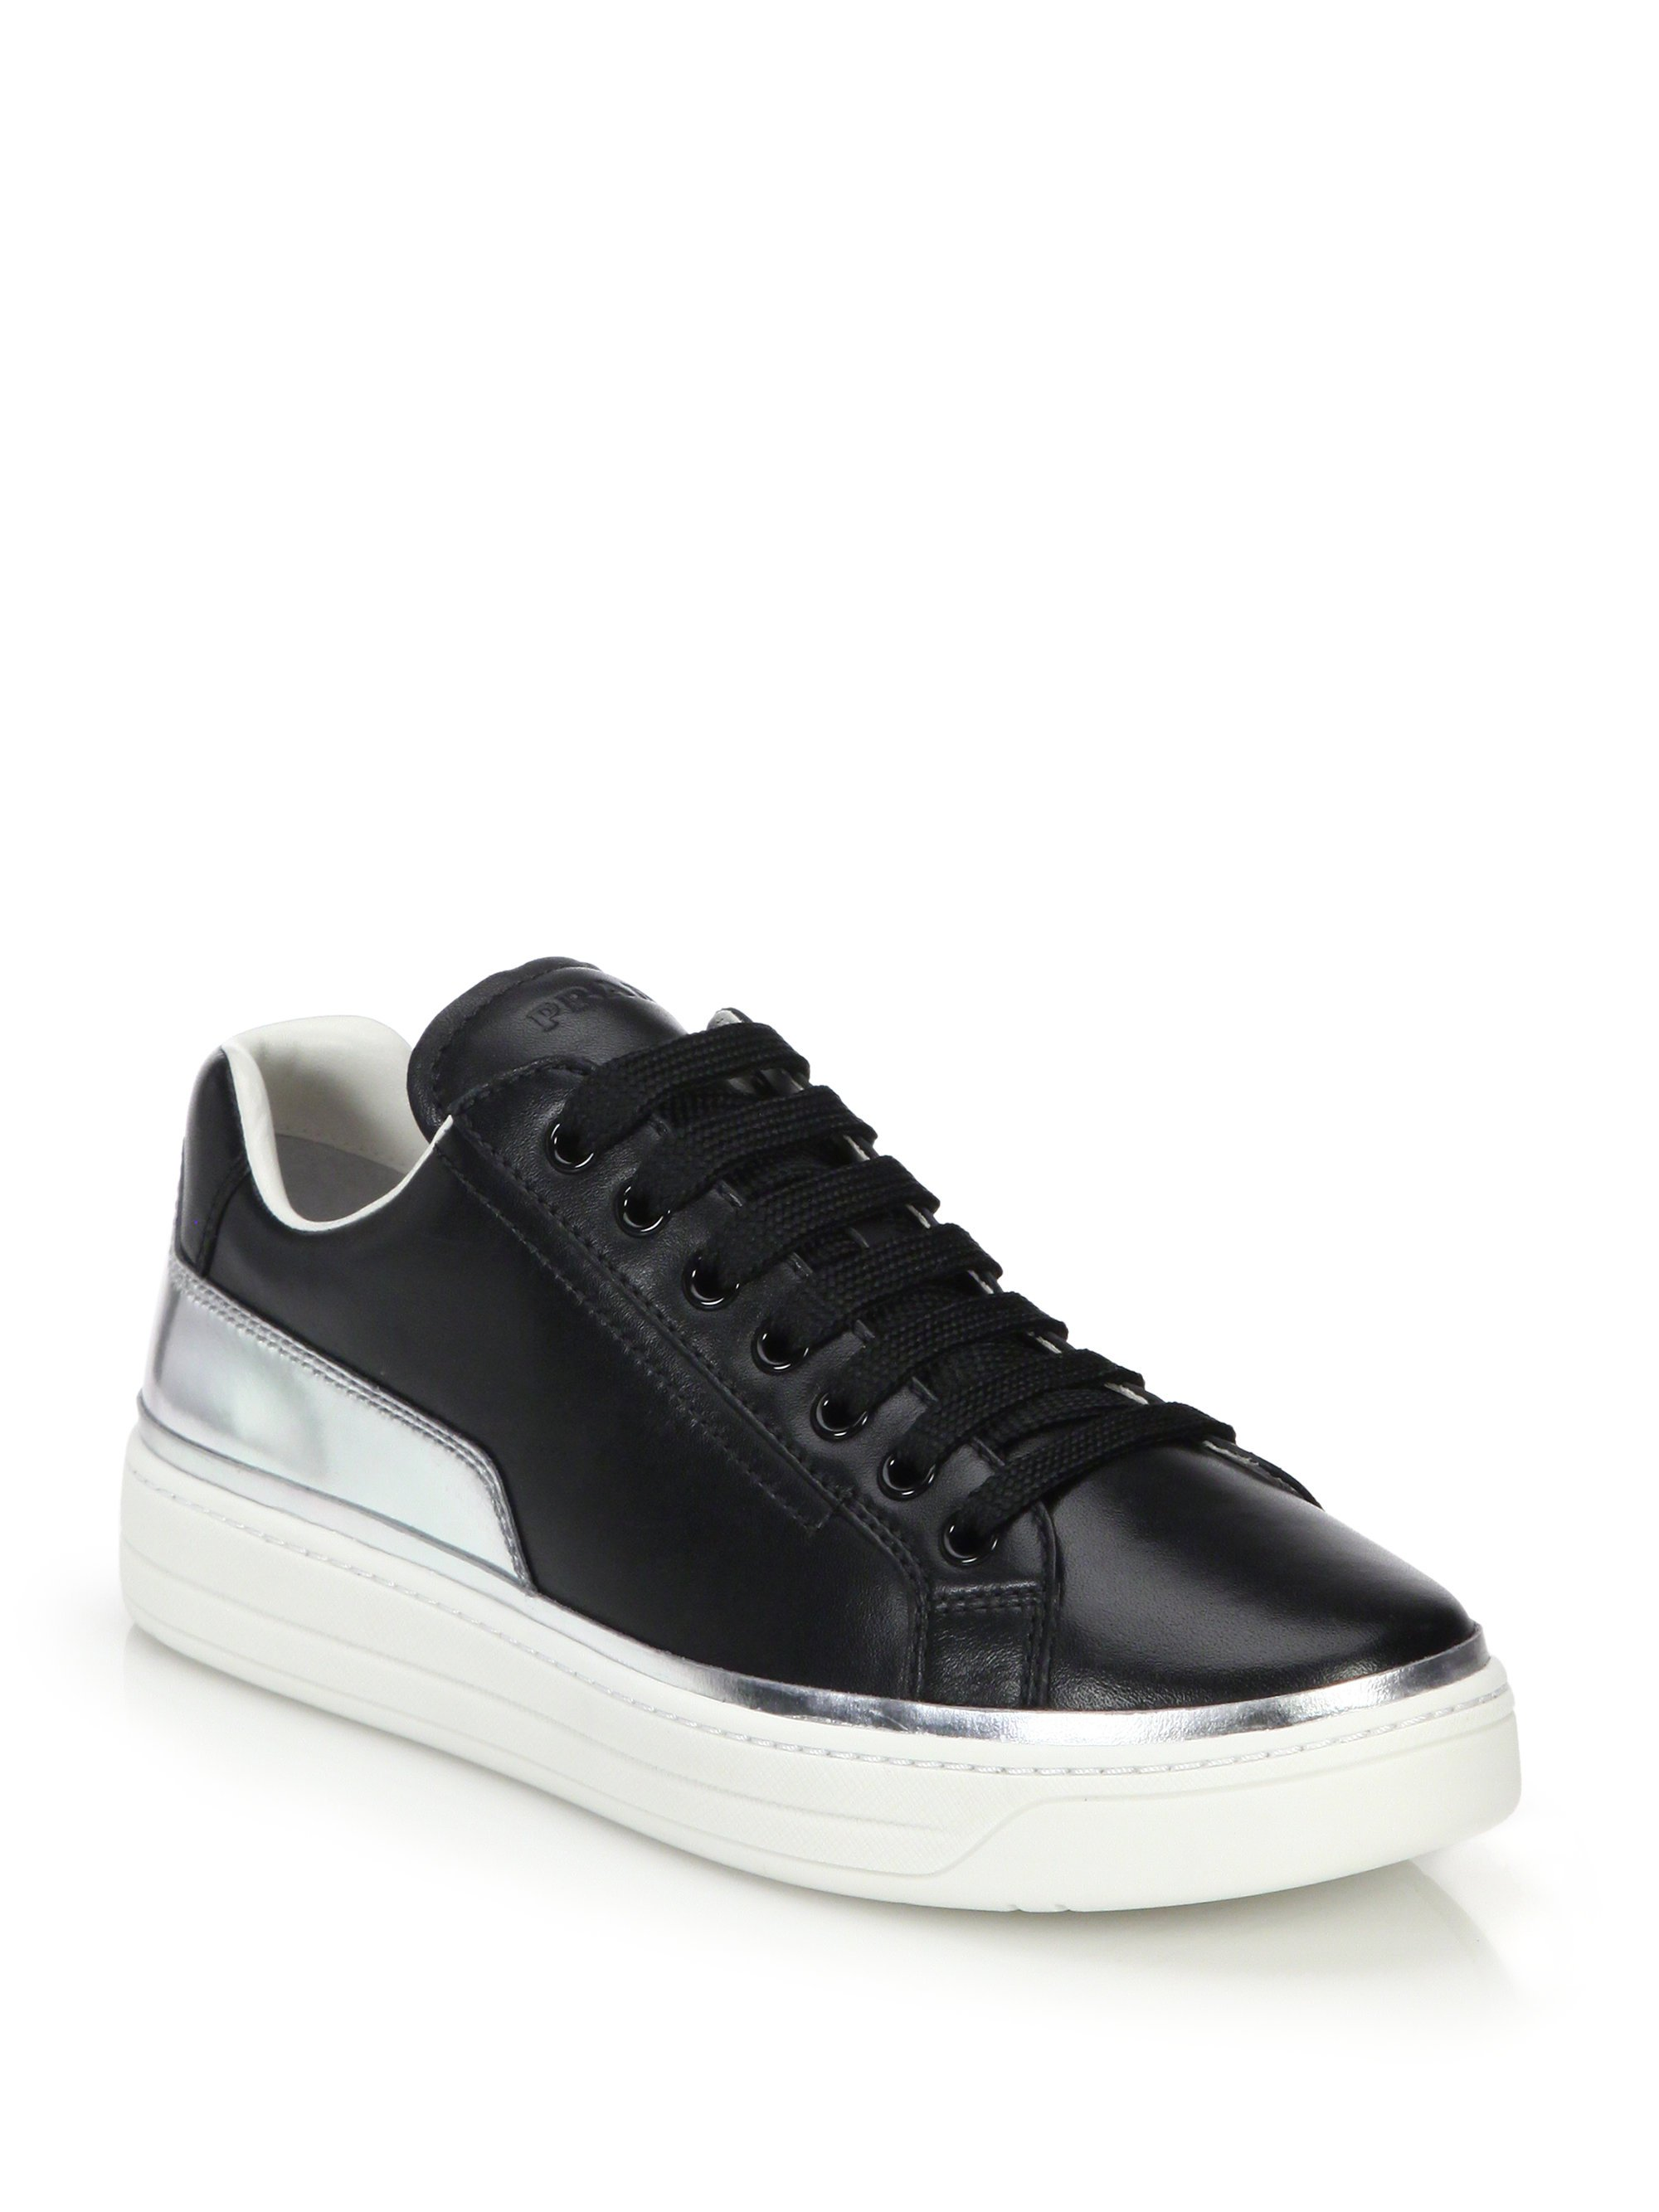 Lyst Prada Metallic Leather Trimmed Leather Sneakers In